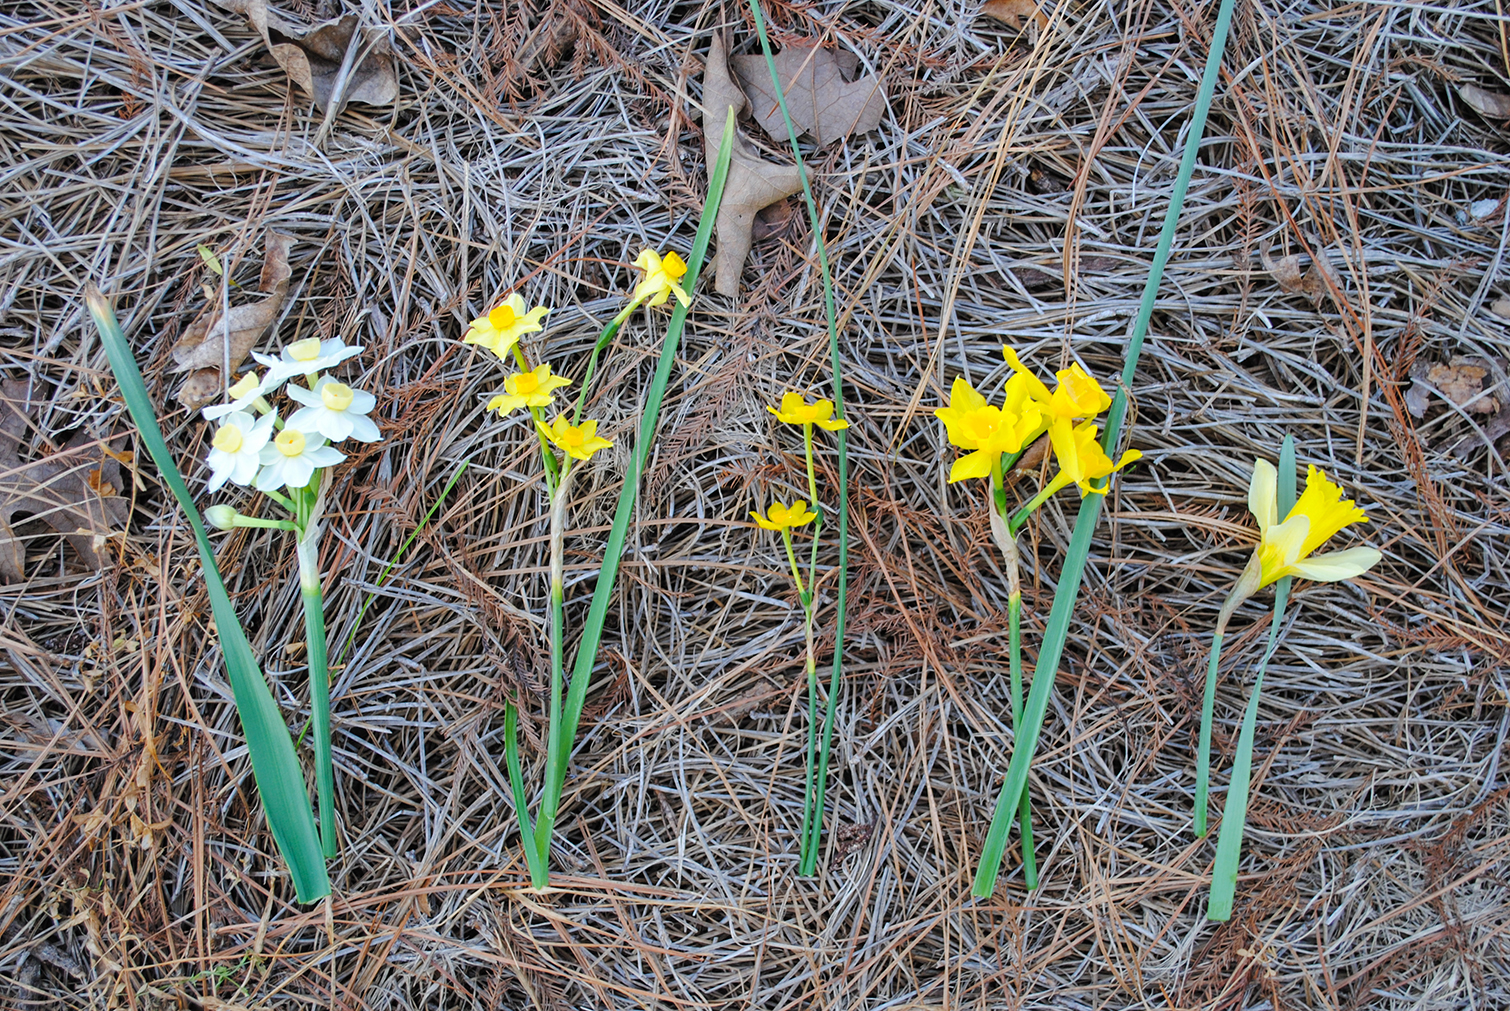 A family photo of Narcissus that shows the wonderment of hybridization, all thanks to the handy work of Greg Grant. He arranged; I photographed. From left to right: Narcissus tazetta 'Grand Primo', Narcissus × intermedius, Narcissus jonquilla, Narcissus × odorus, and Narcissus pseudonarcissus. Those noted with a hybrid '×' in their name exhibit intermediate characteristics between the two species on either side. (Note: Straight tazetta is the supposed parent for Narcissus × intermedius.)